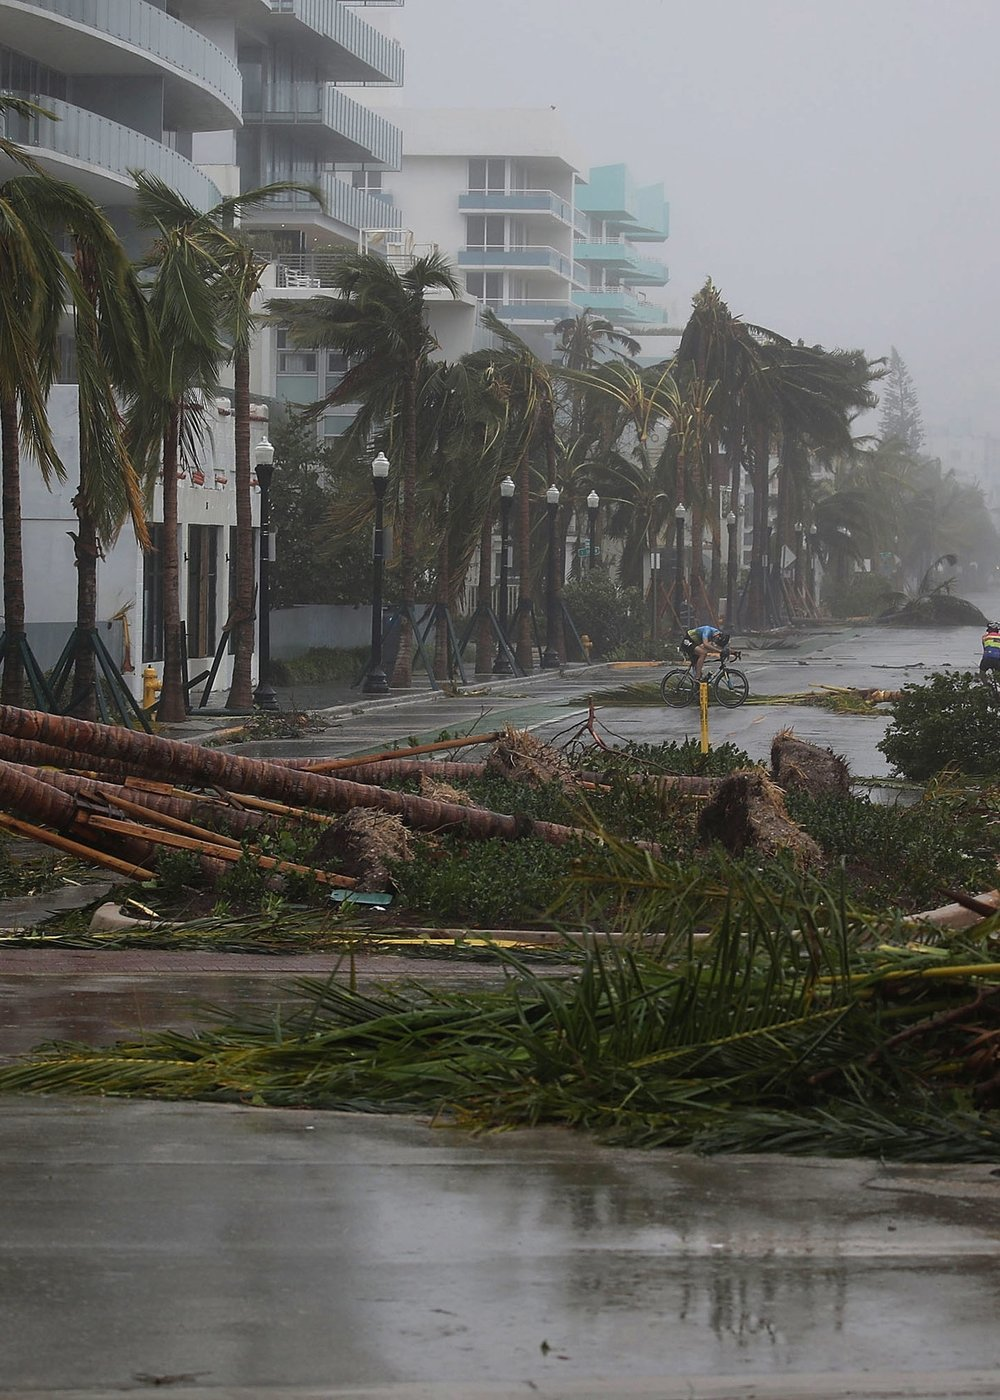 MIAMI   The city's not underwater, but the growing frequency of hurricanes - and the insurance claims that go with them - have rendered the city uninsurable.  Fortunes were lost here, and the now-homeless former tenants of wrecked homes flood northward into other cities.